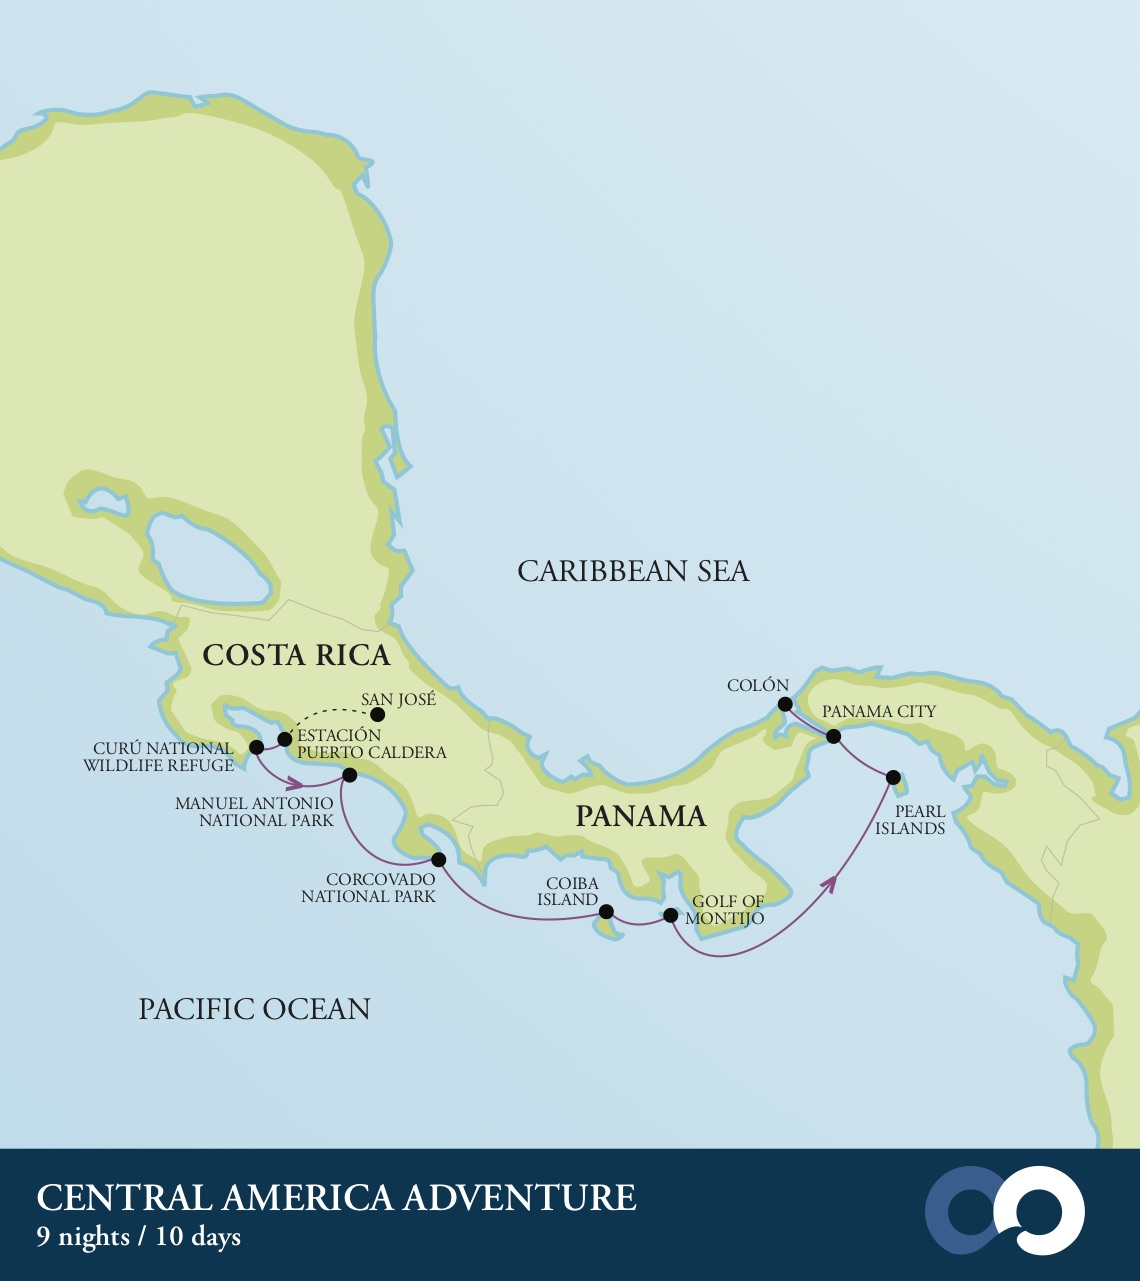 Costa Rica to Panama route